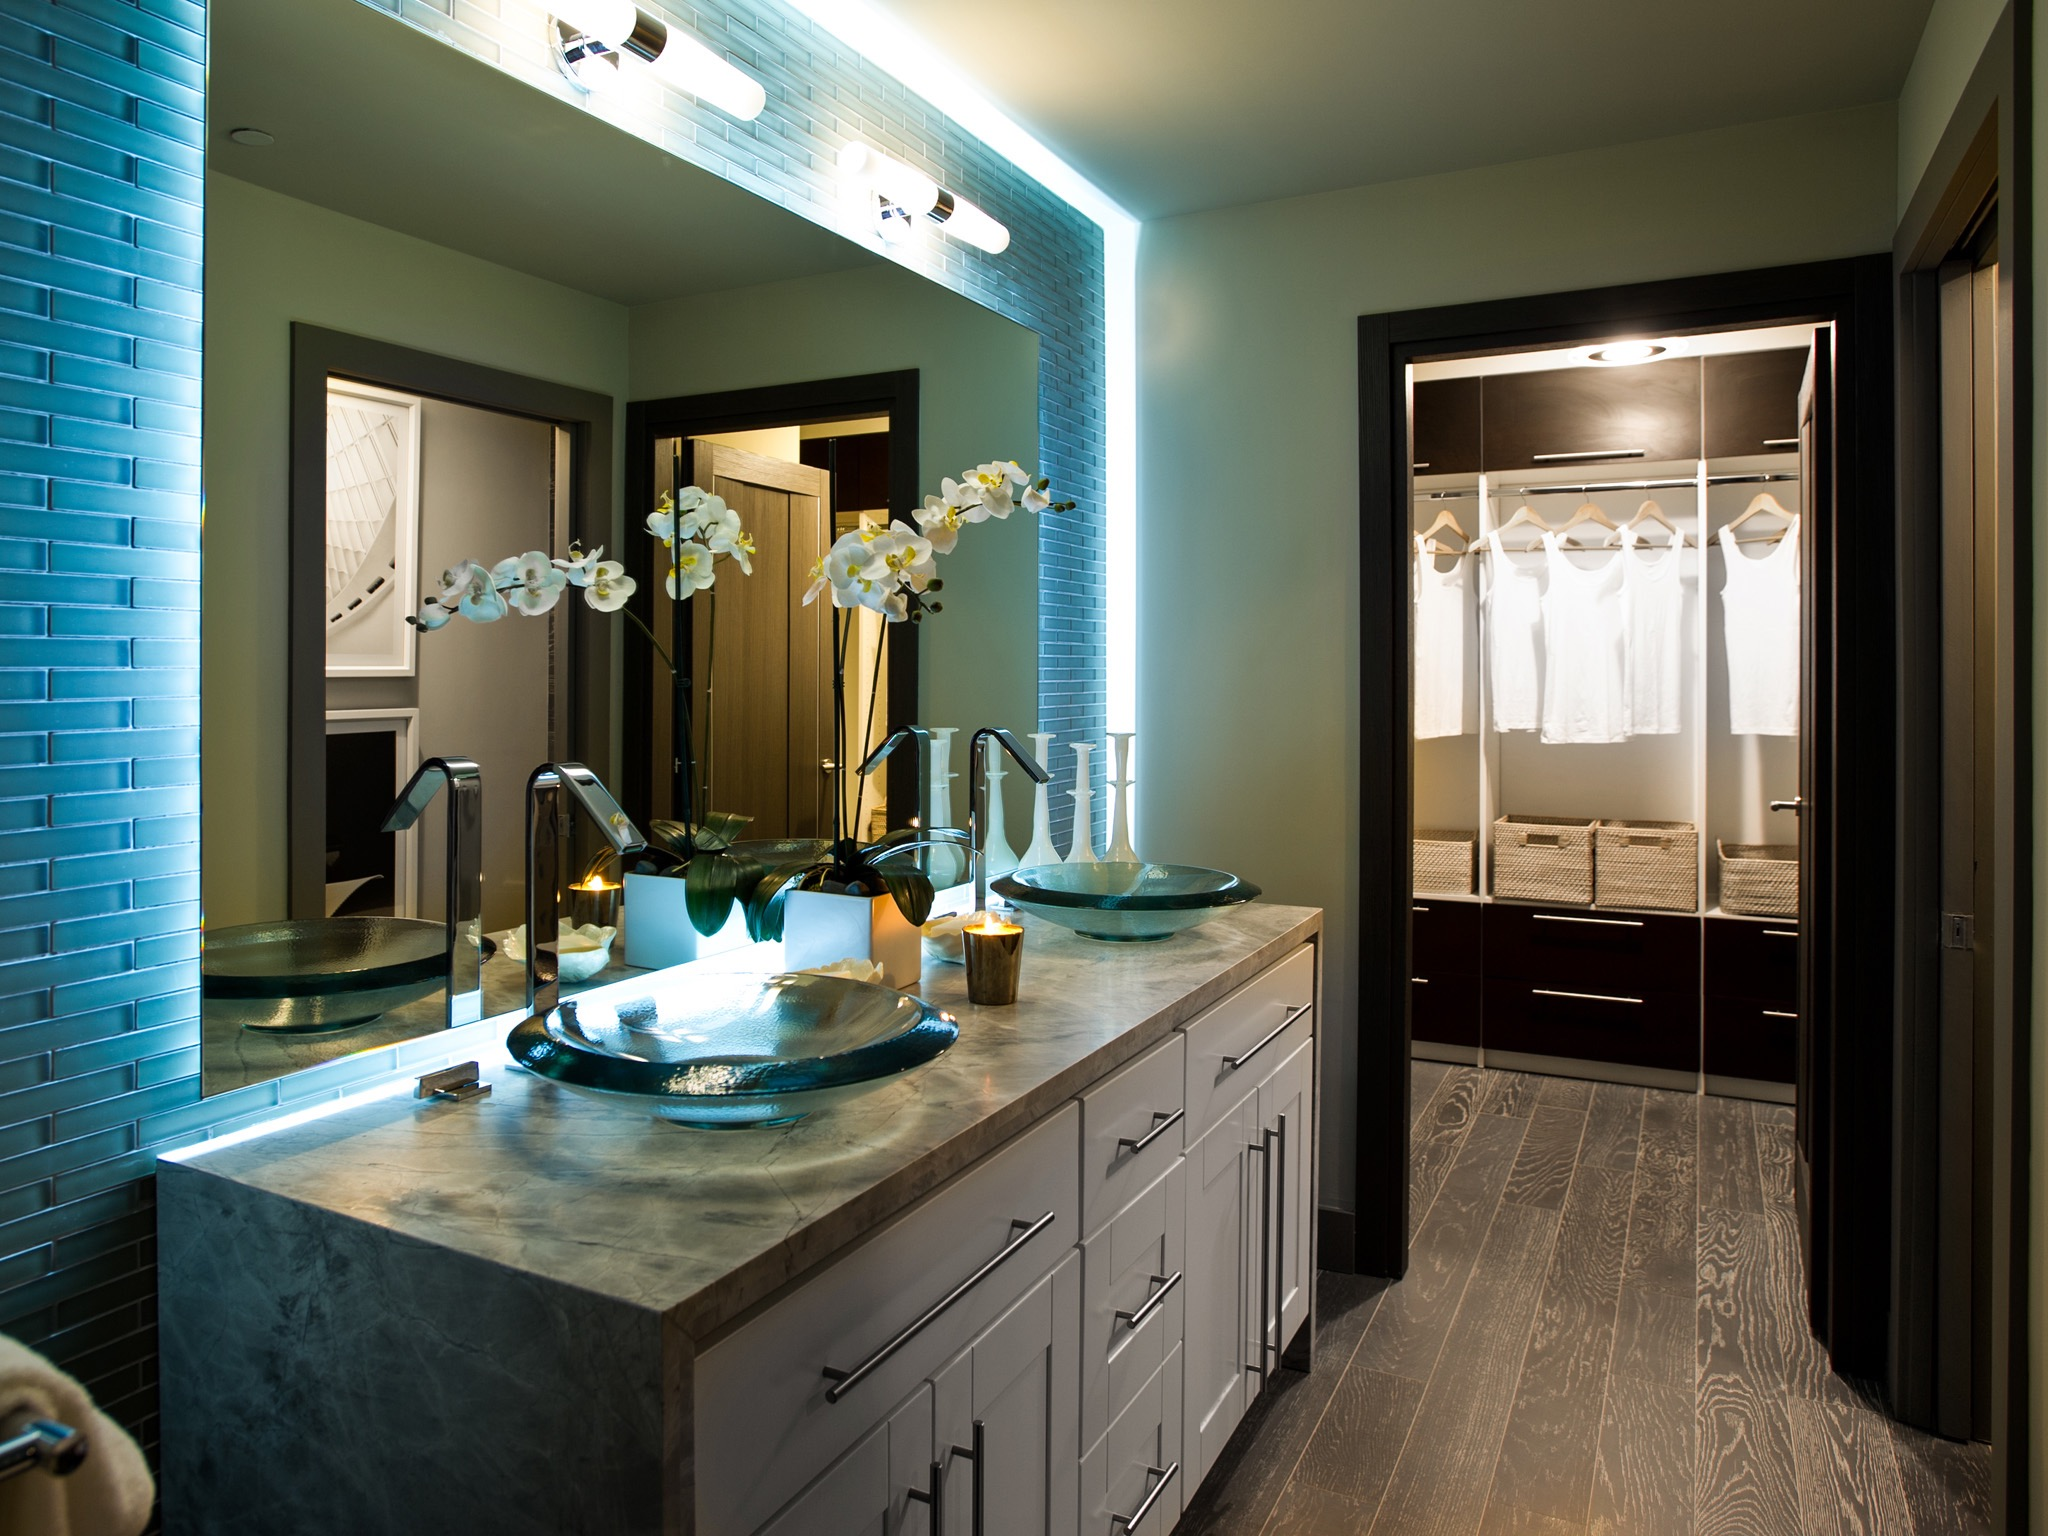 Modern Backlit Vanity Lighting For Modern Bathroom (View 11 of 19)